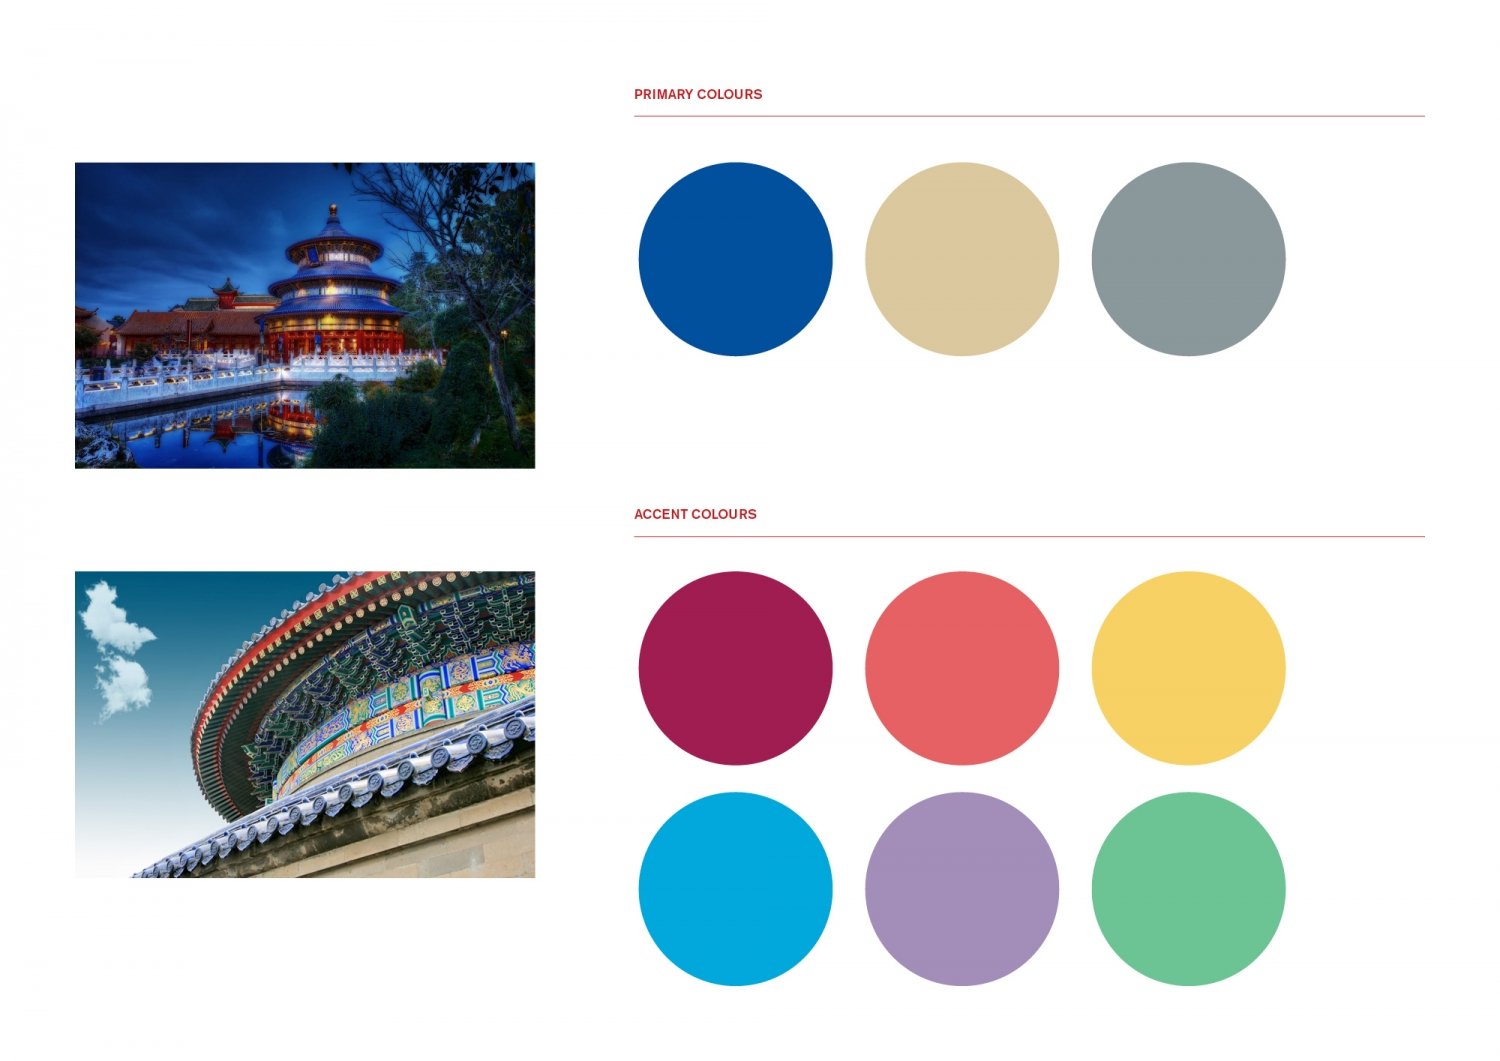 This is a collage of two colourful detailed photographs of the Temple of Heaven in Beijing on the left, and a series of circular colour samples on the right showing both primary and accent colours used